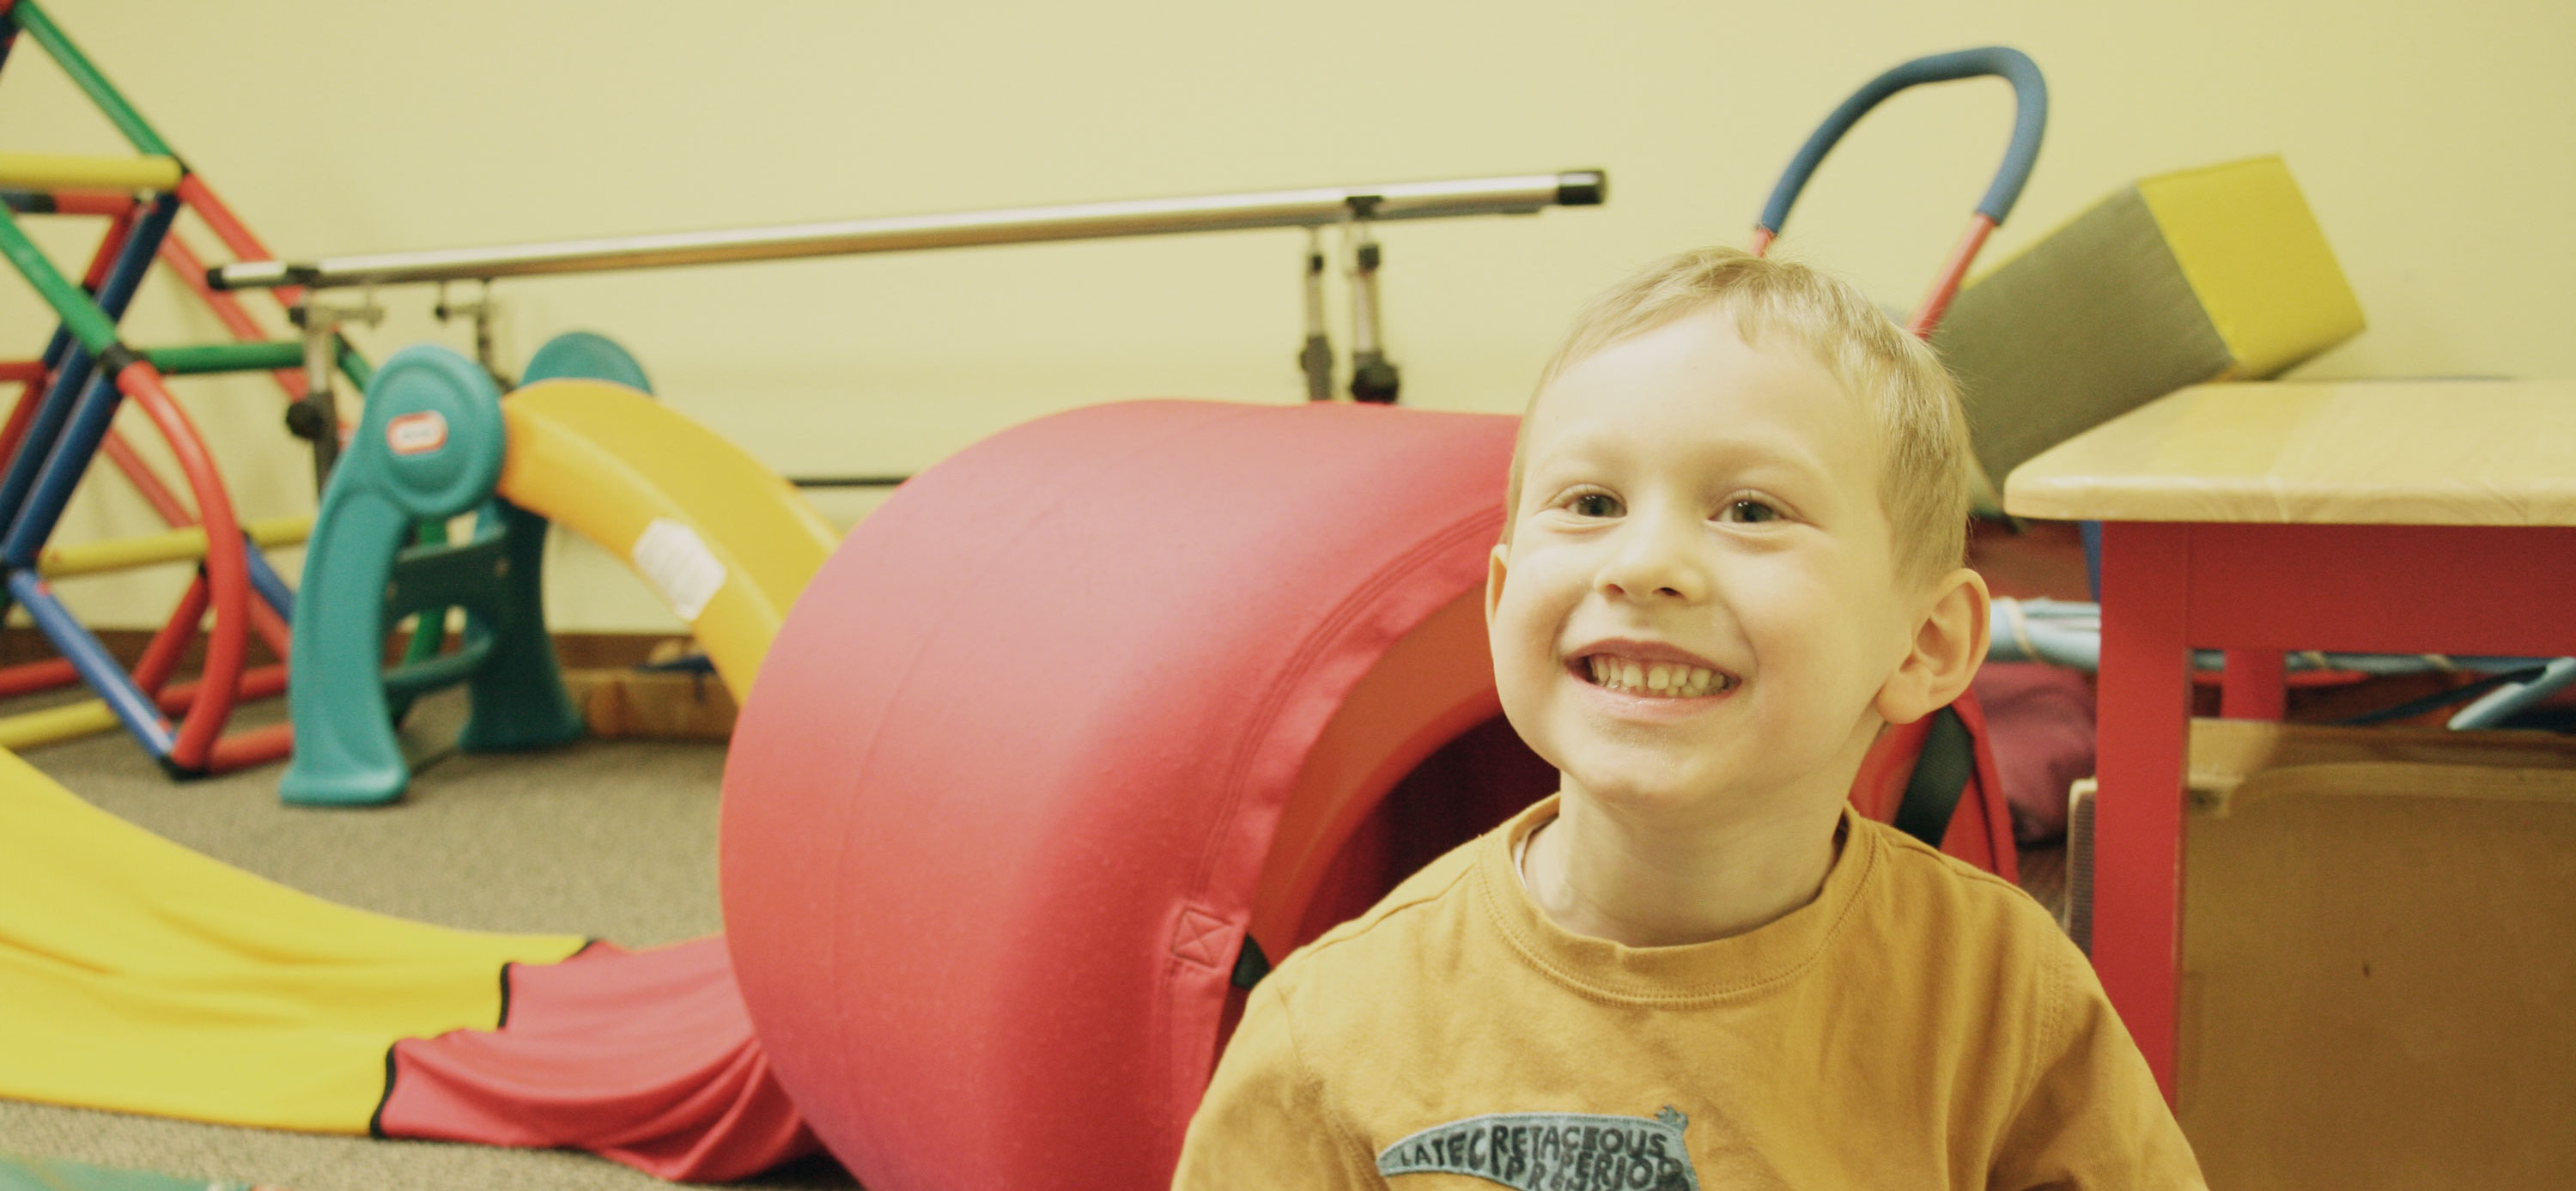 pediatric physical, occupational, speech therapy